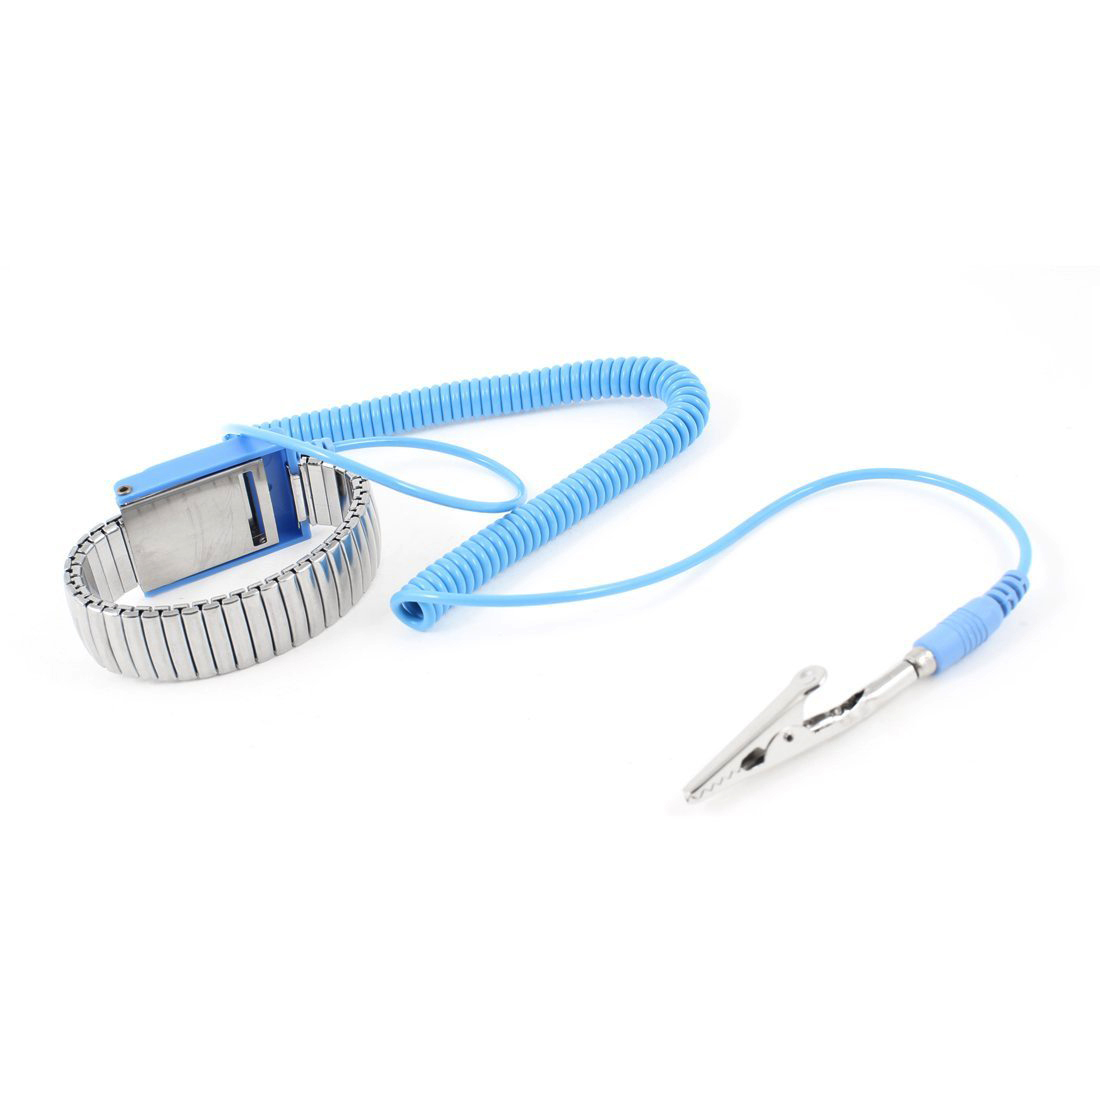 Wearable Devices Hearty Antistatic Esd Wristband Metal Adjustable Grounding Strap Blue